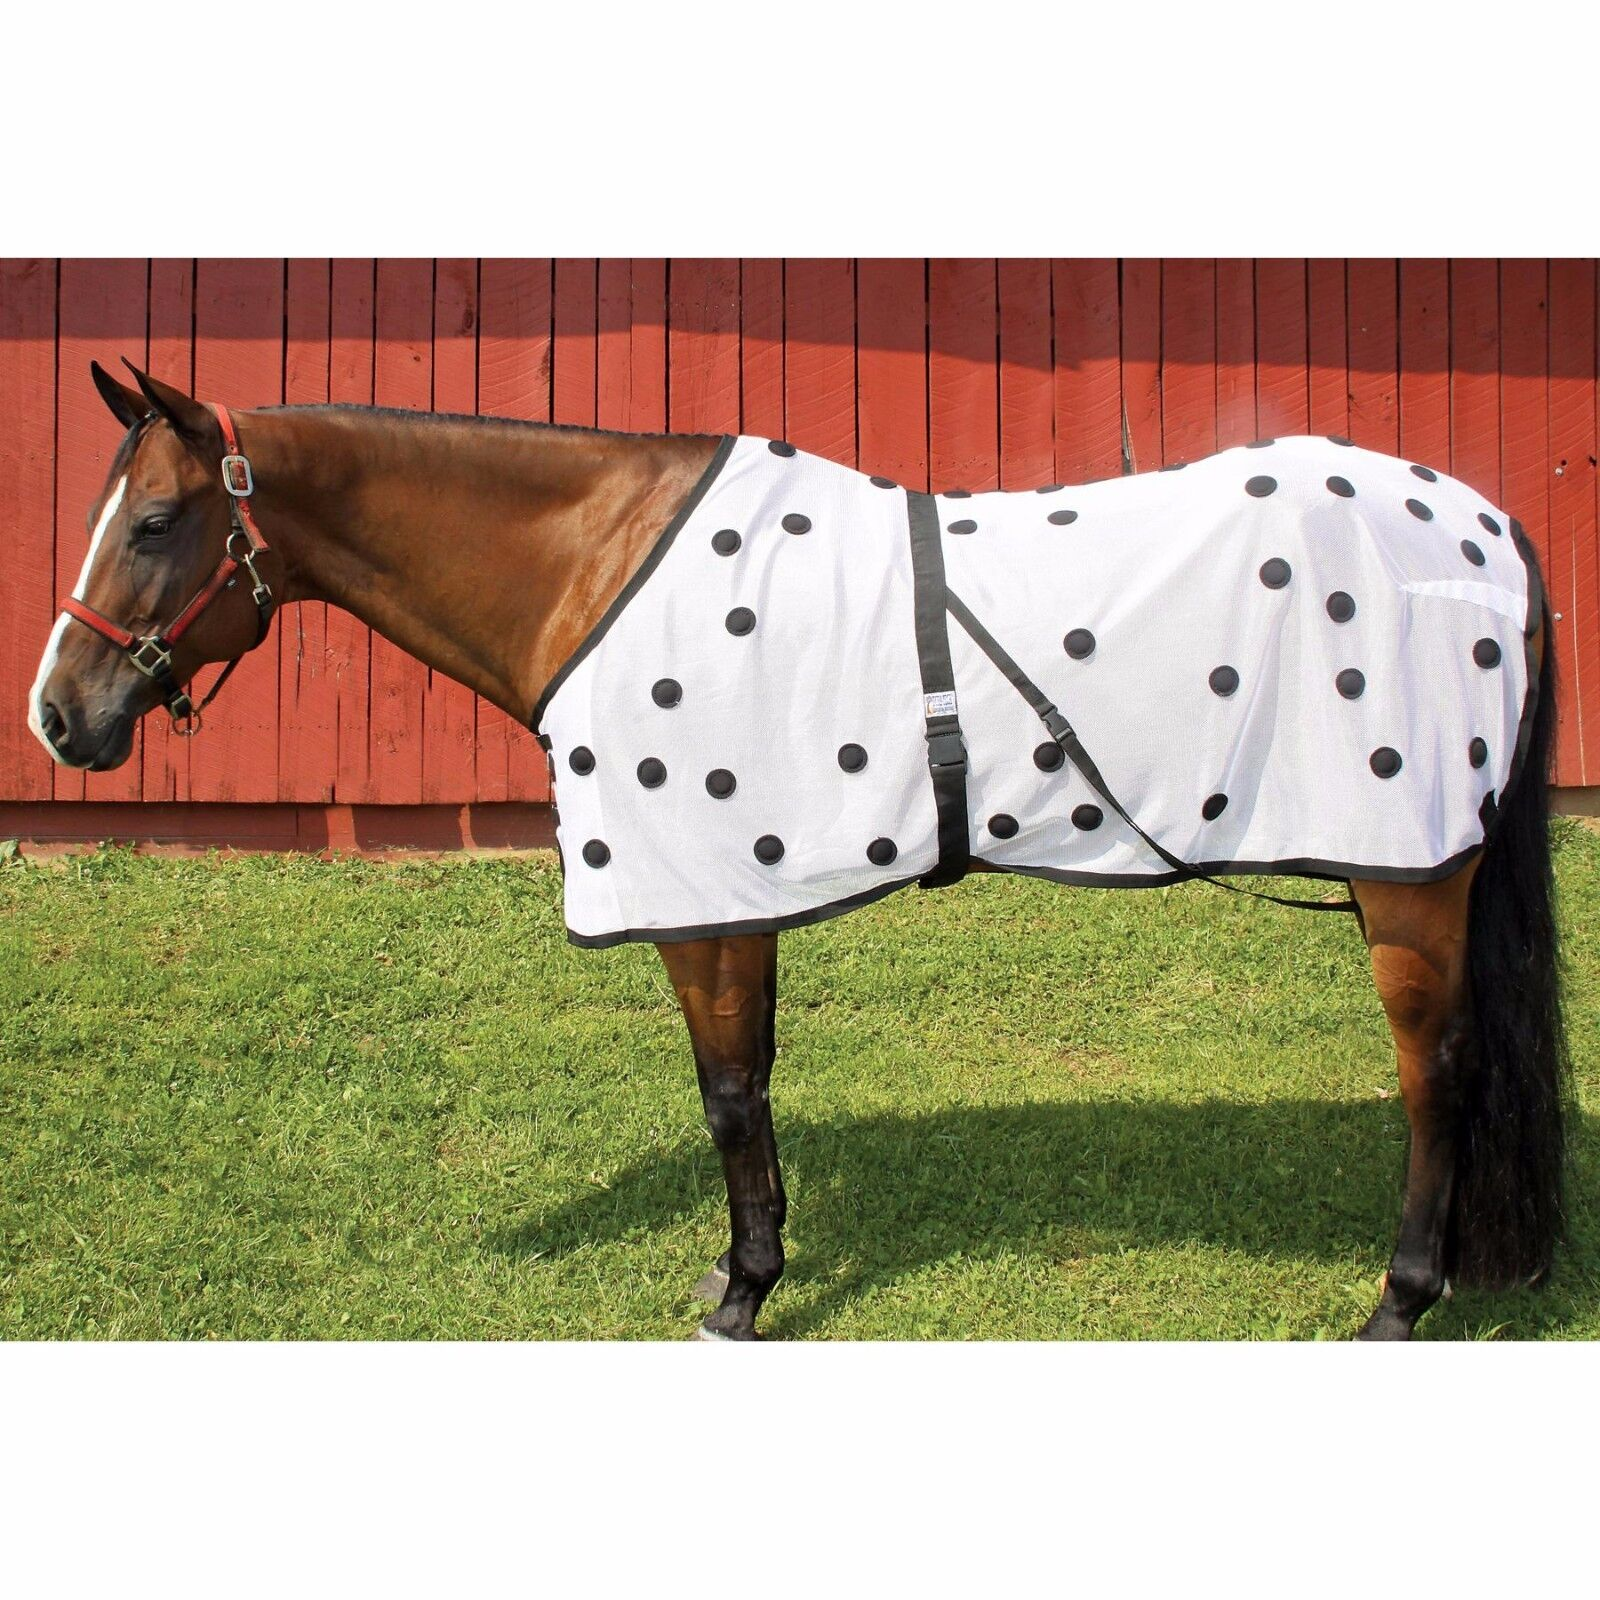 Dura-Tech Magnetic  Horse Sheet - FREE SHIPPING  promotional items